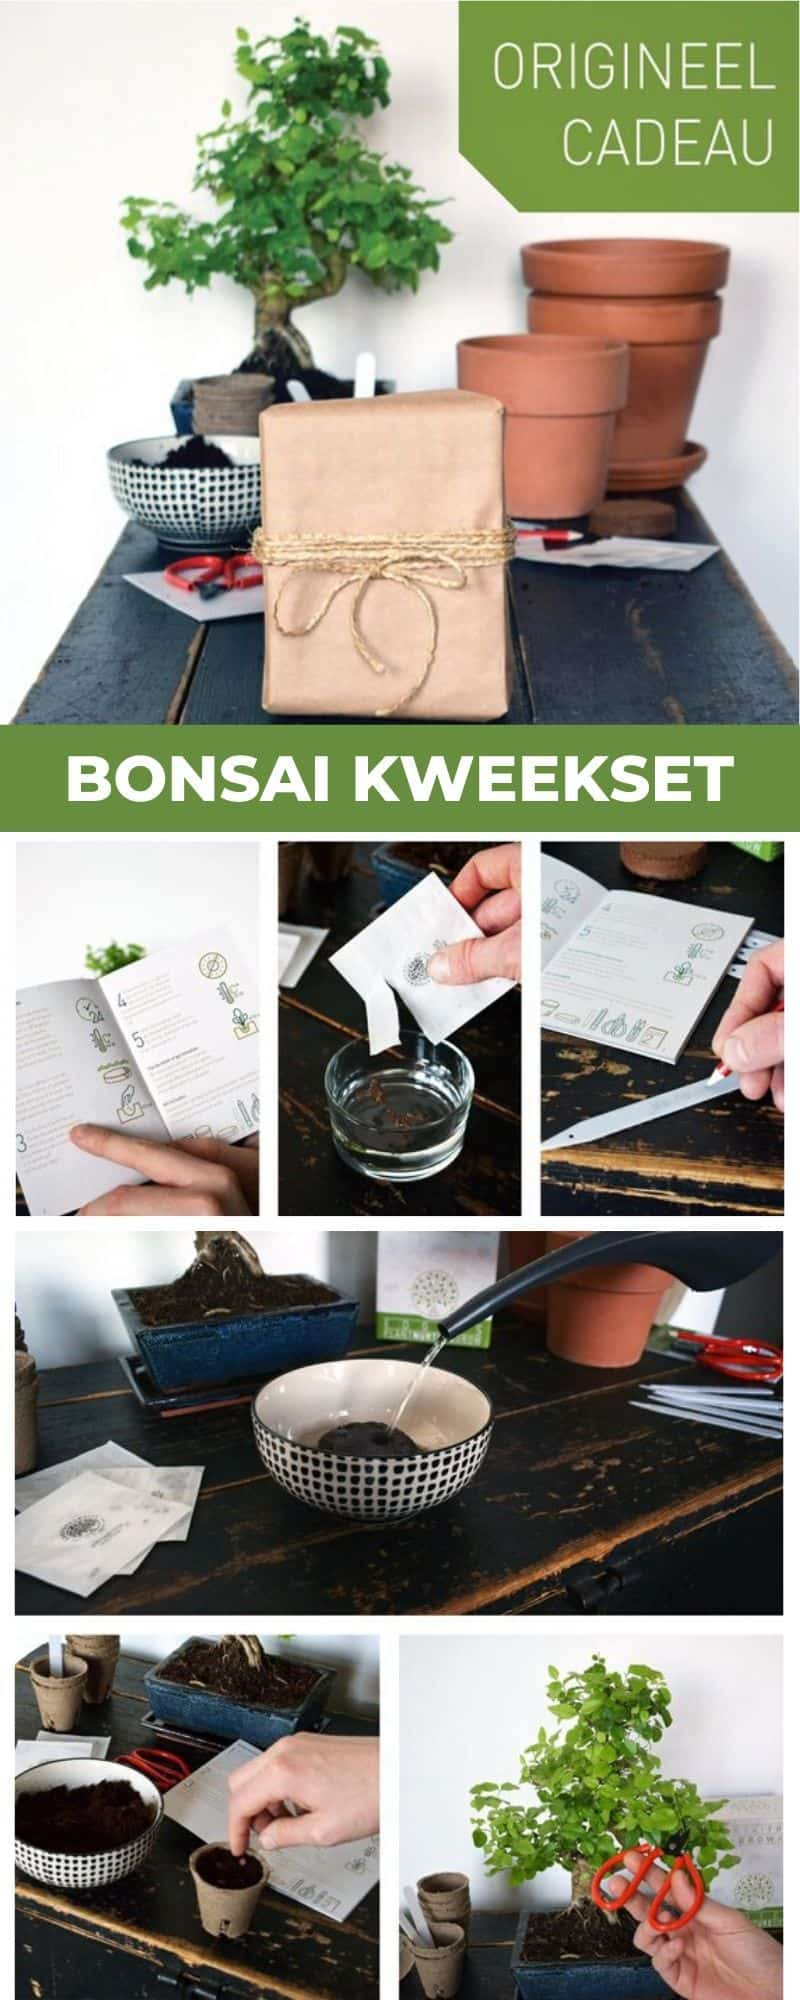 Bonsai kweekset